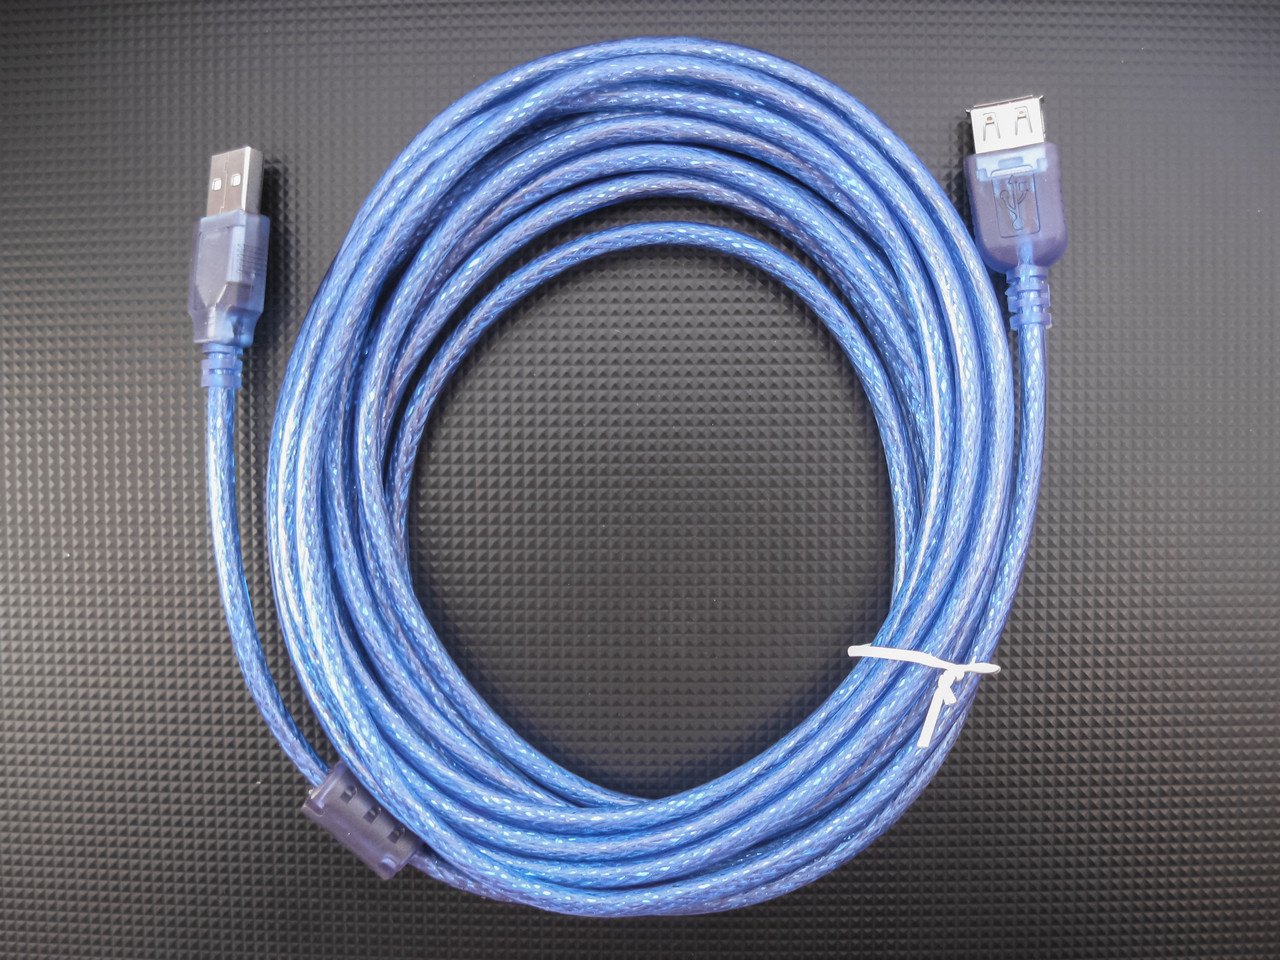 Usb 20 5 Try Wire Wiring